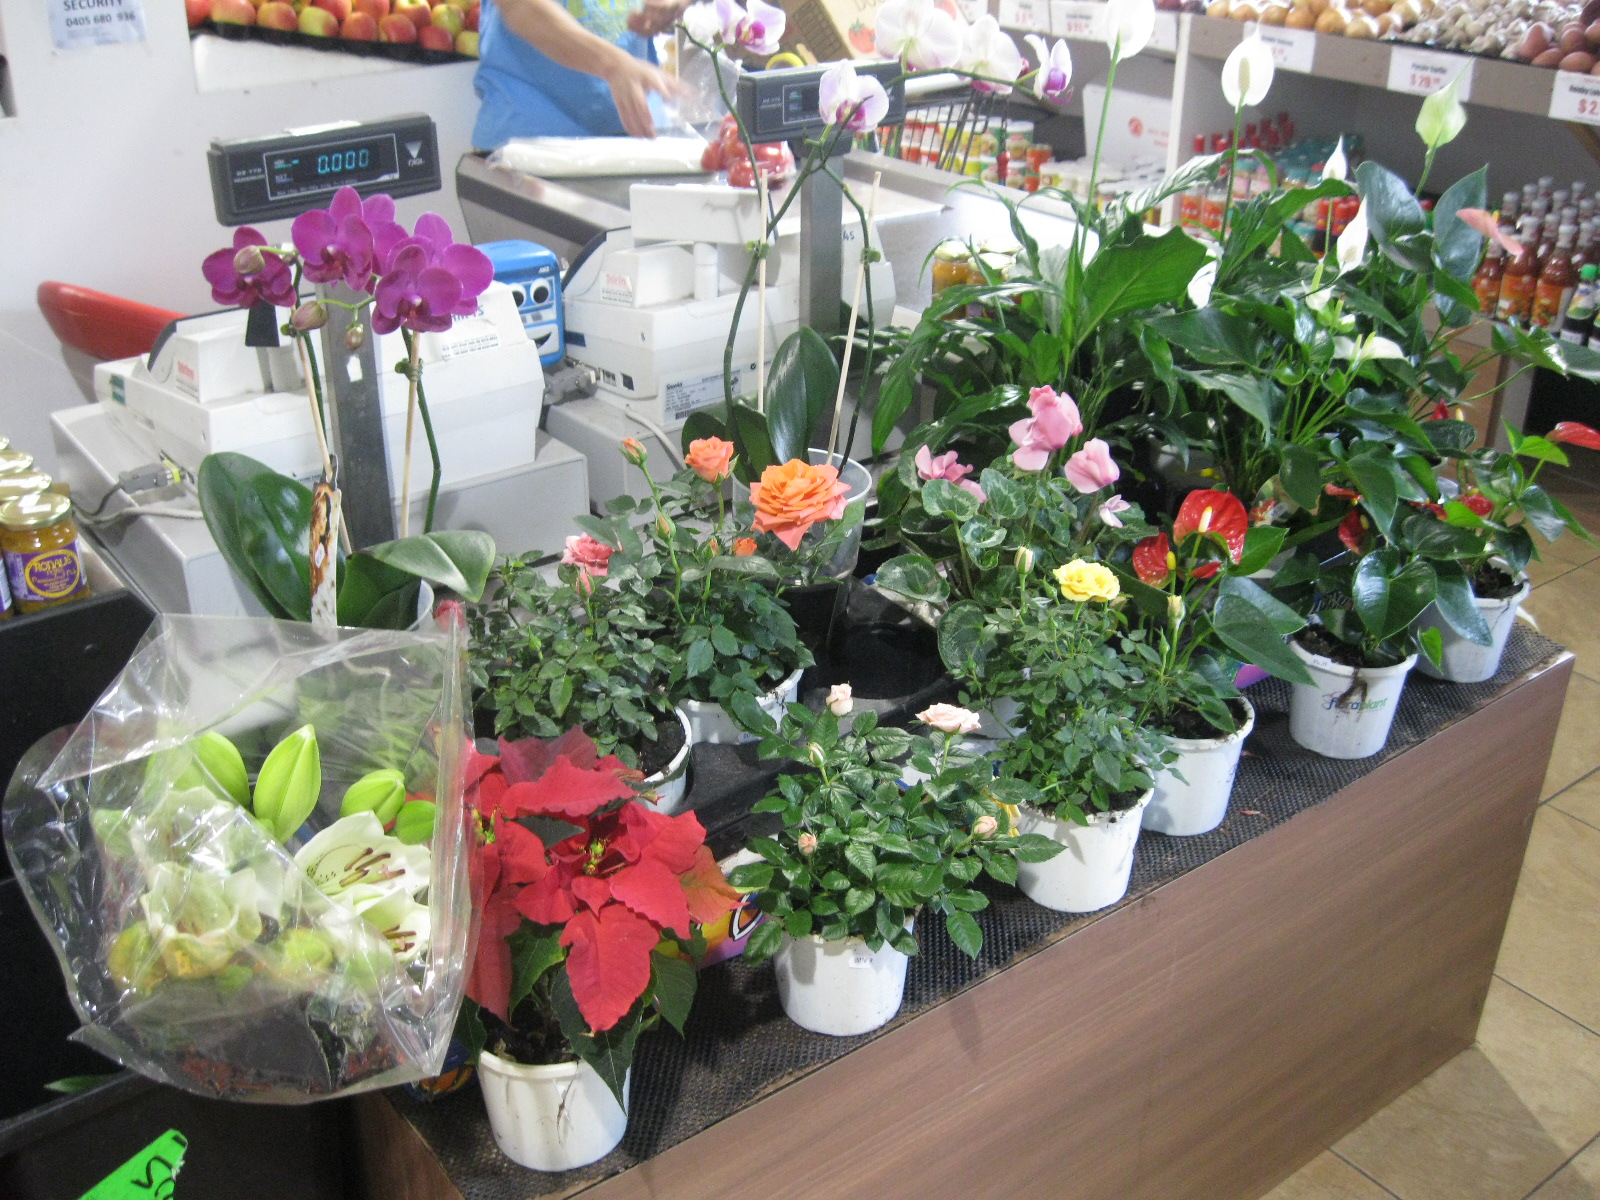 Flowering plants for sale at a grocery store in Freemantle, Western Australia